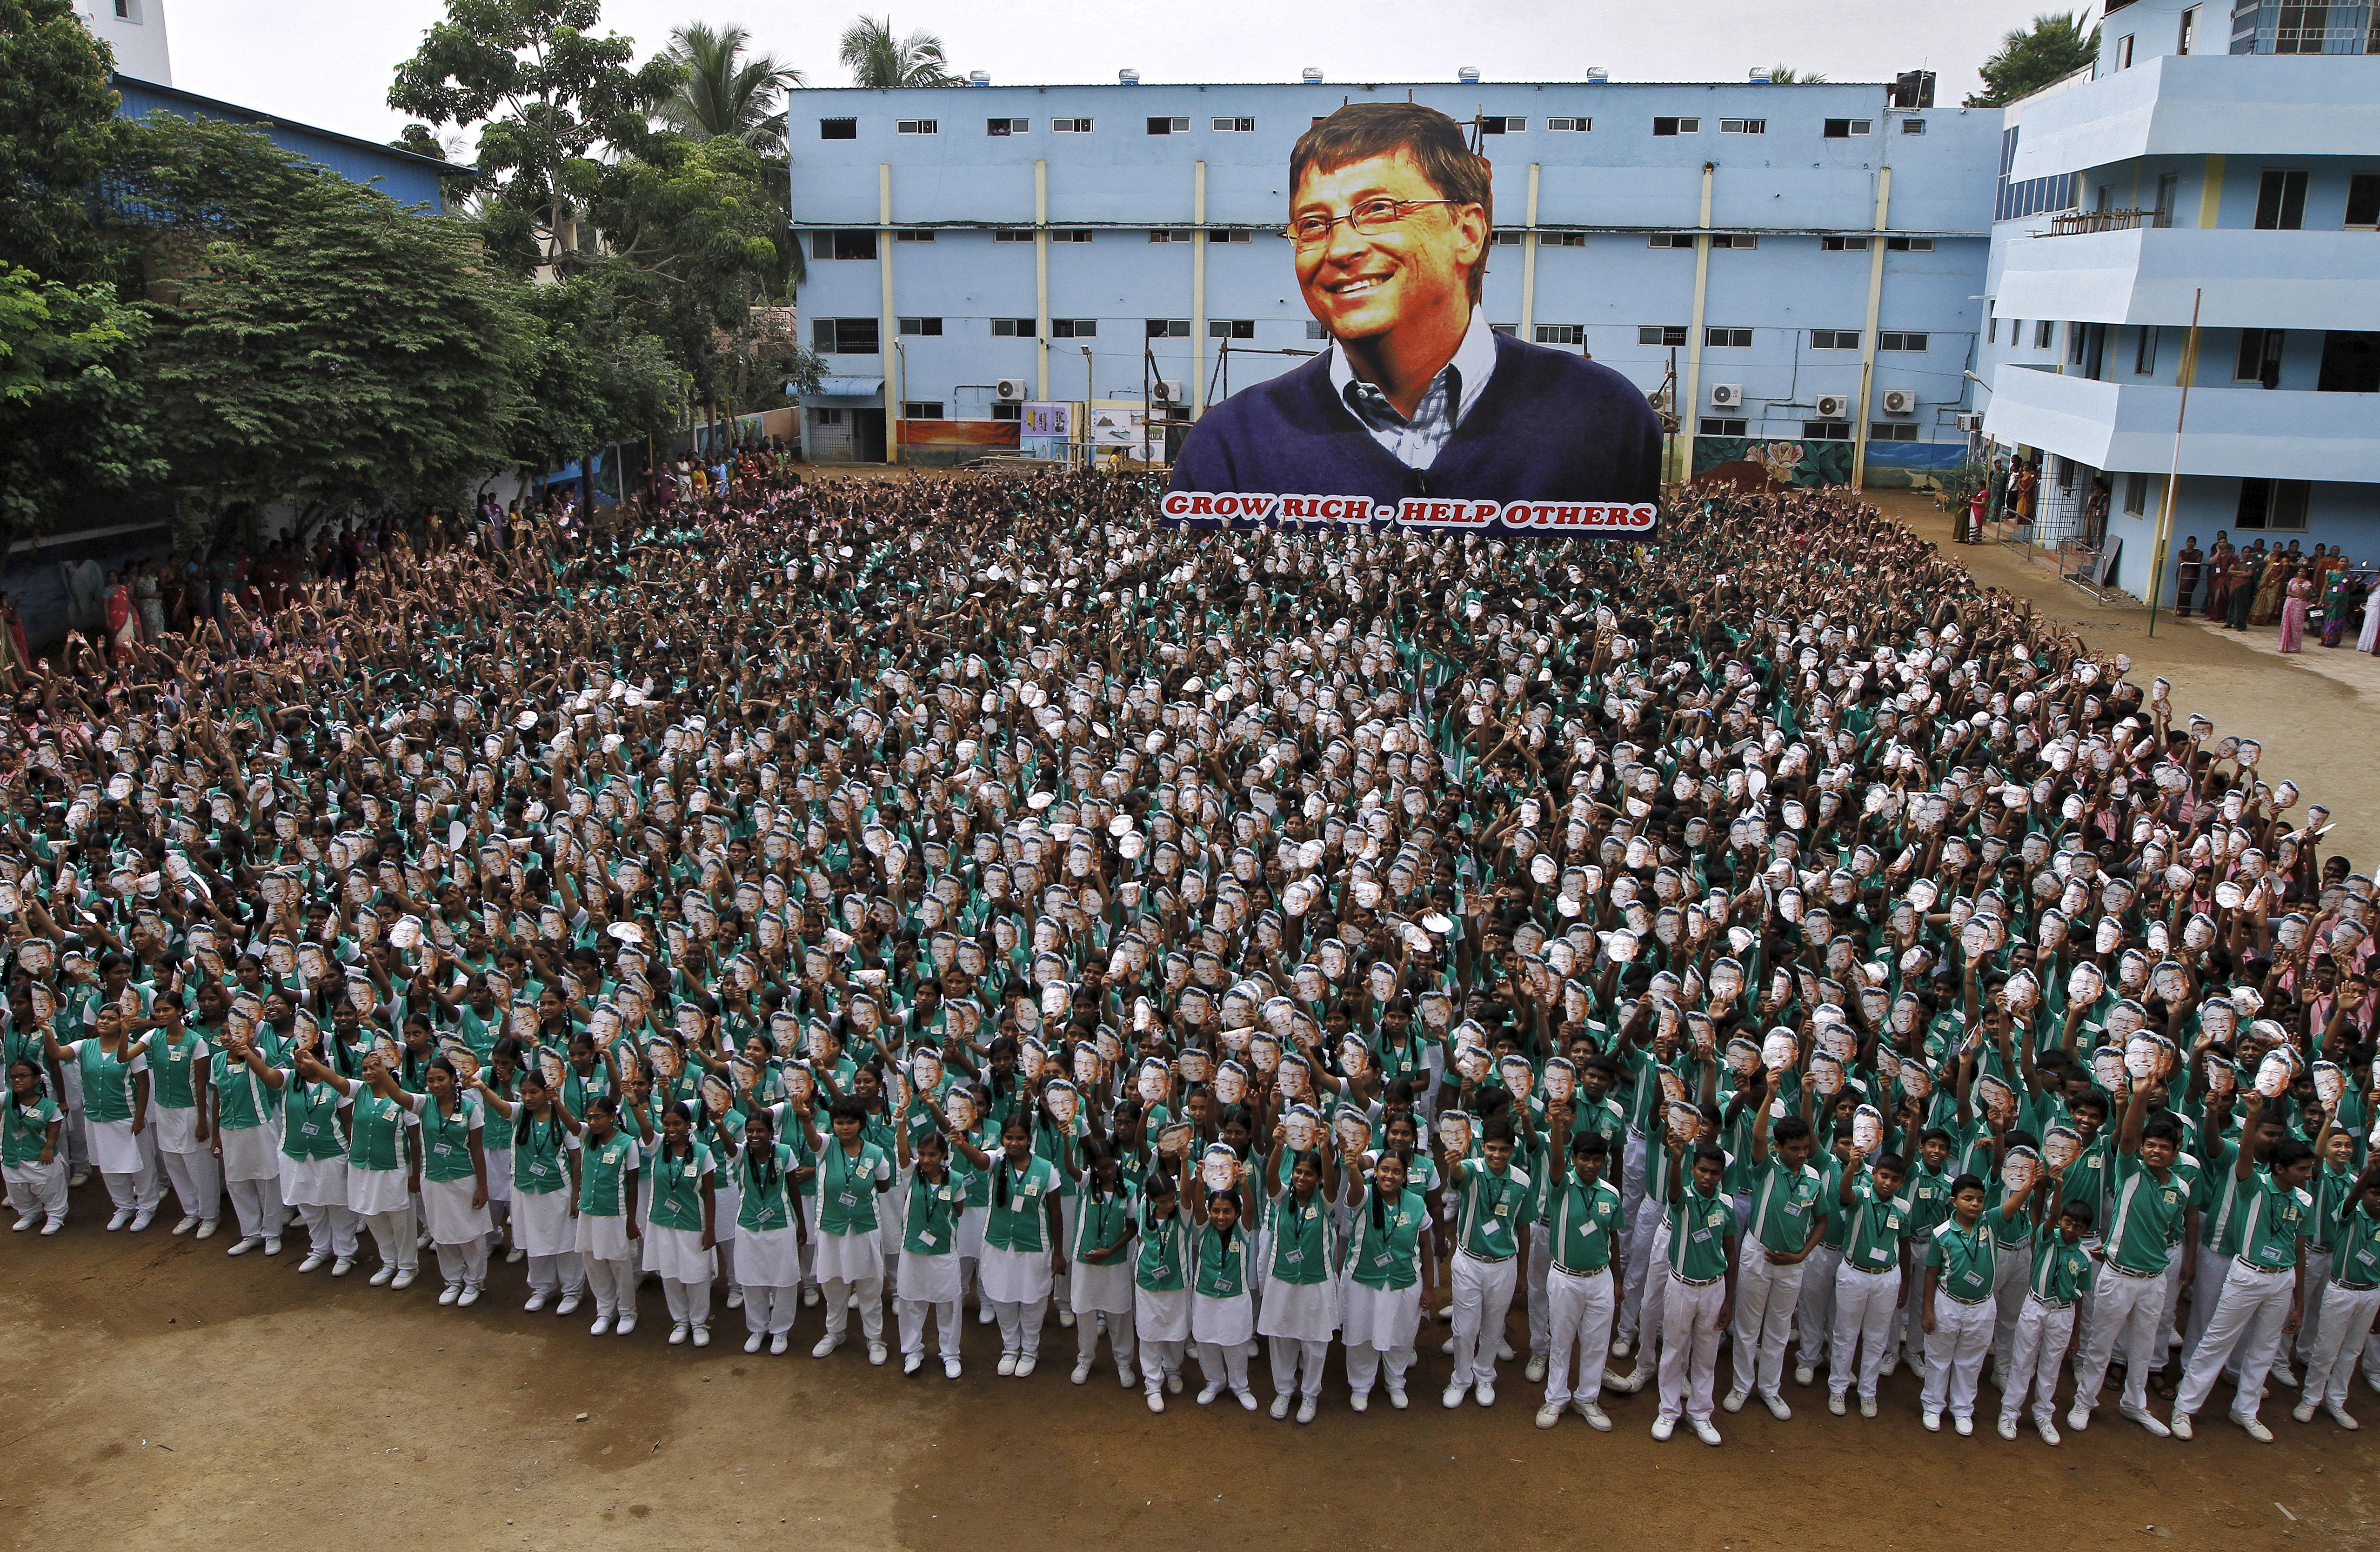 School children hold portraits of Microsoft co-founder Bill Gates in front of a giant picture of Gates during celebrations to mark his 60th birthday inside the school premises in Chennai, India on Oct. 28, 2015.